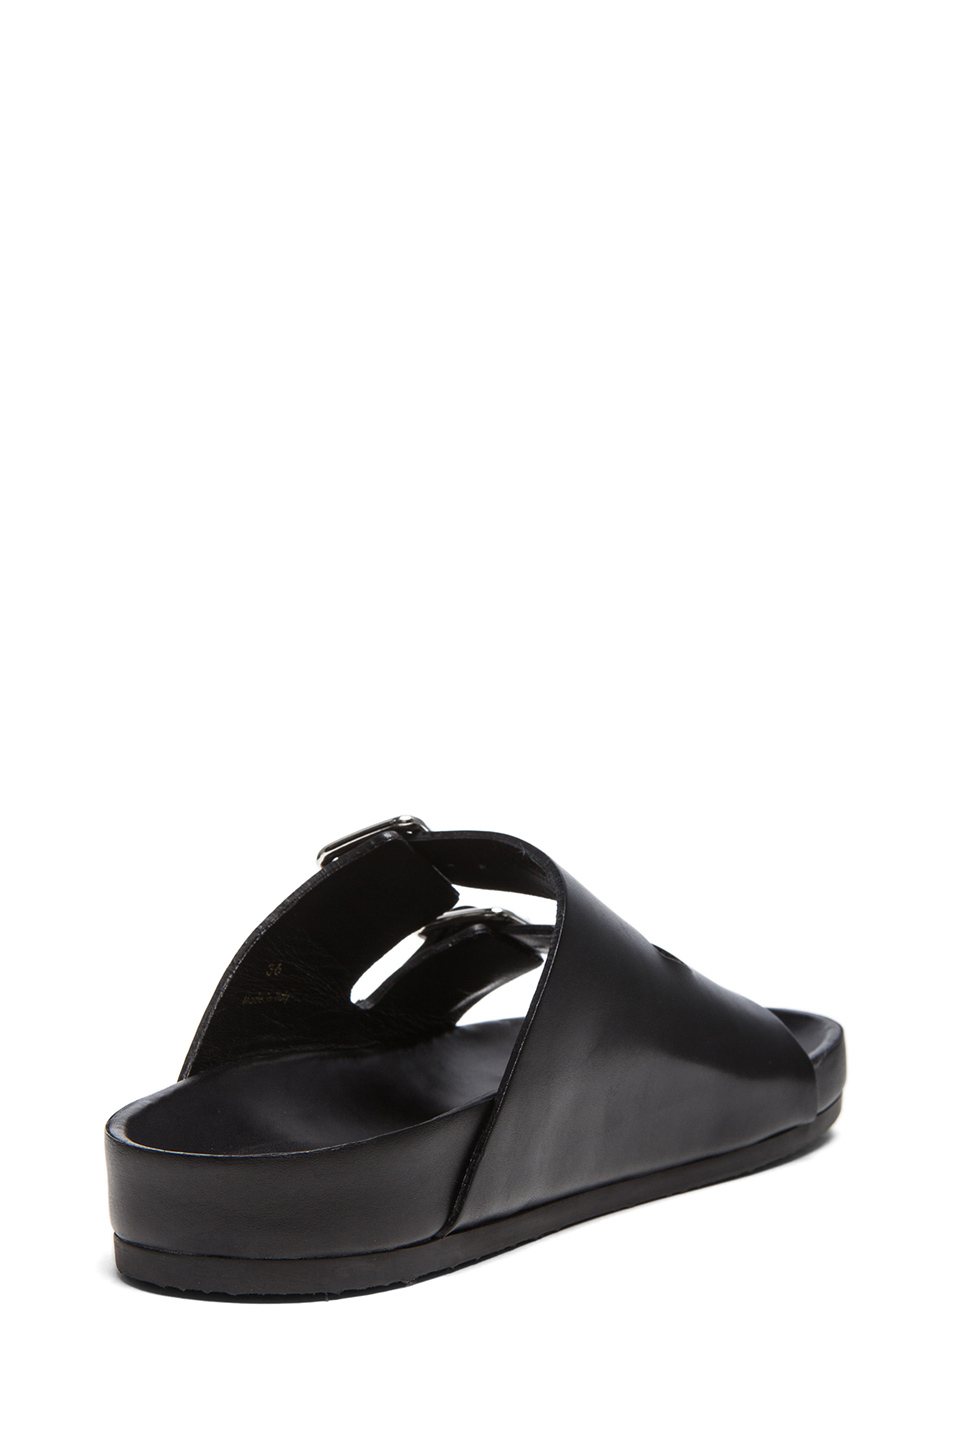 GIVENCHY Barka Casual Calfskin Leather Sandals in Black